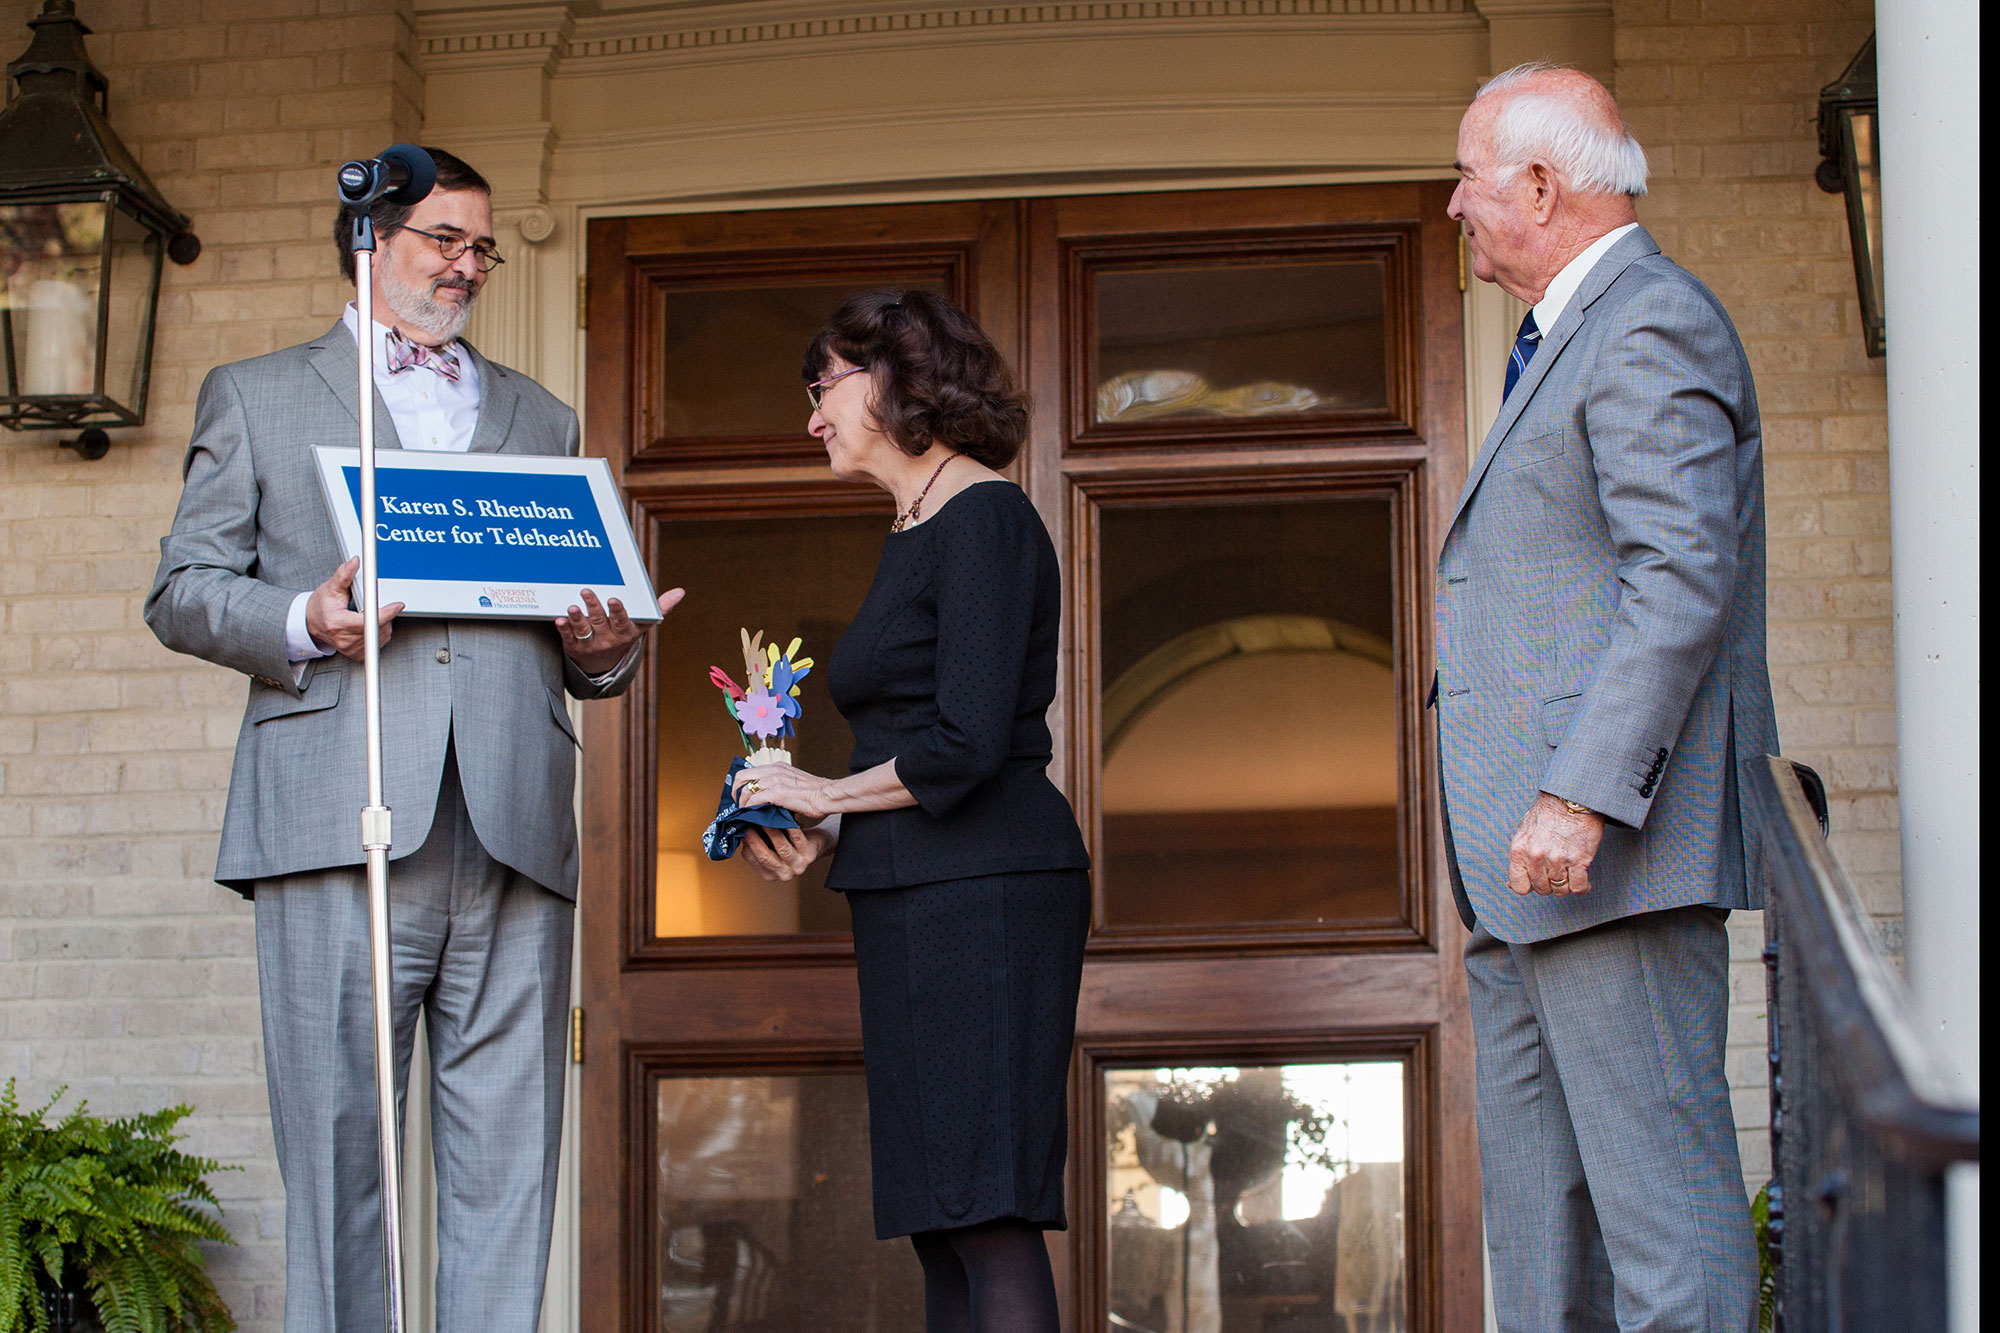 The UVA Health System celebrated telemedicine pioneer Karen S. Rheuban by naming its Center for Telehealth in her honor.